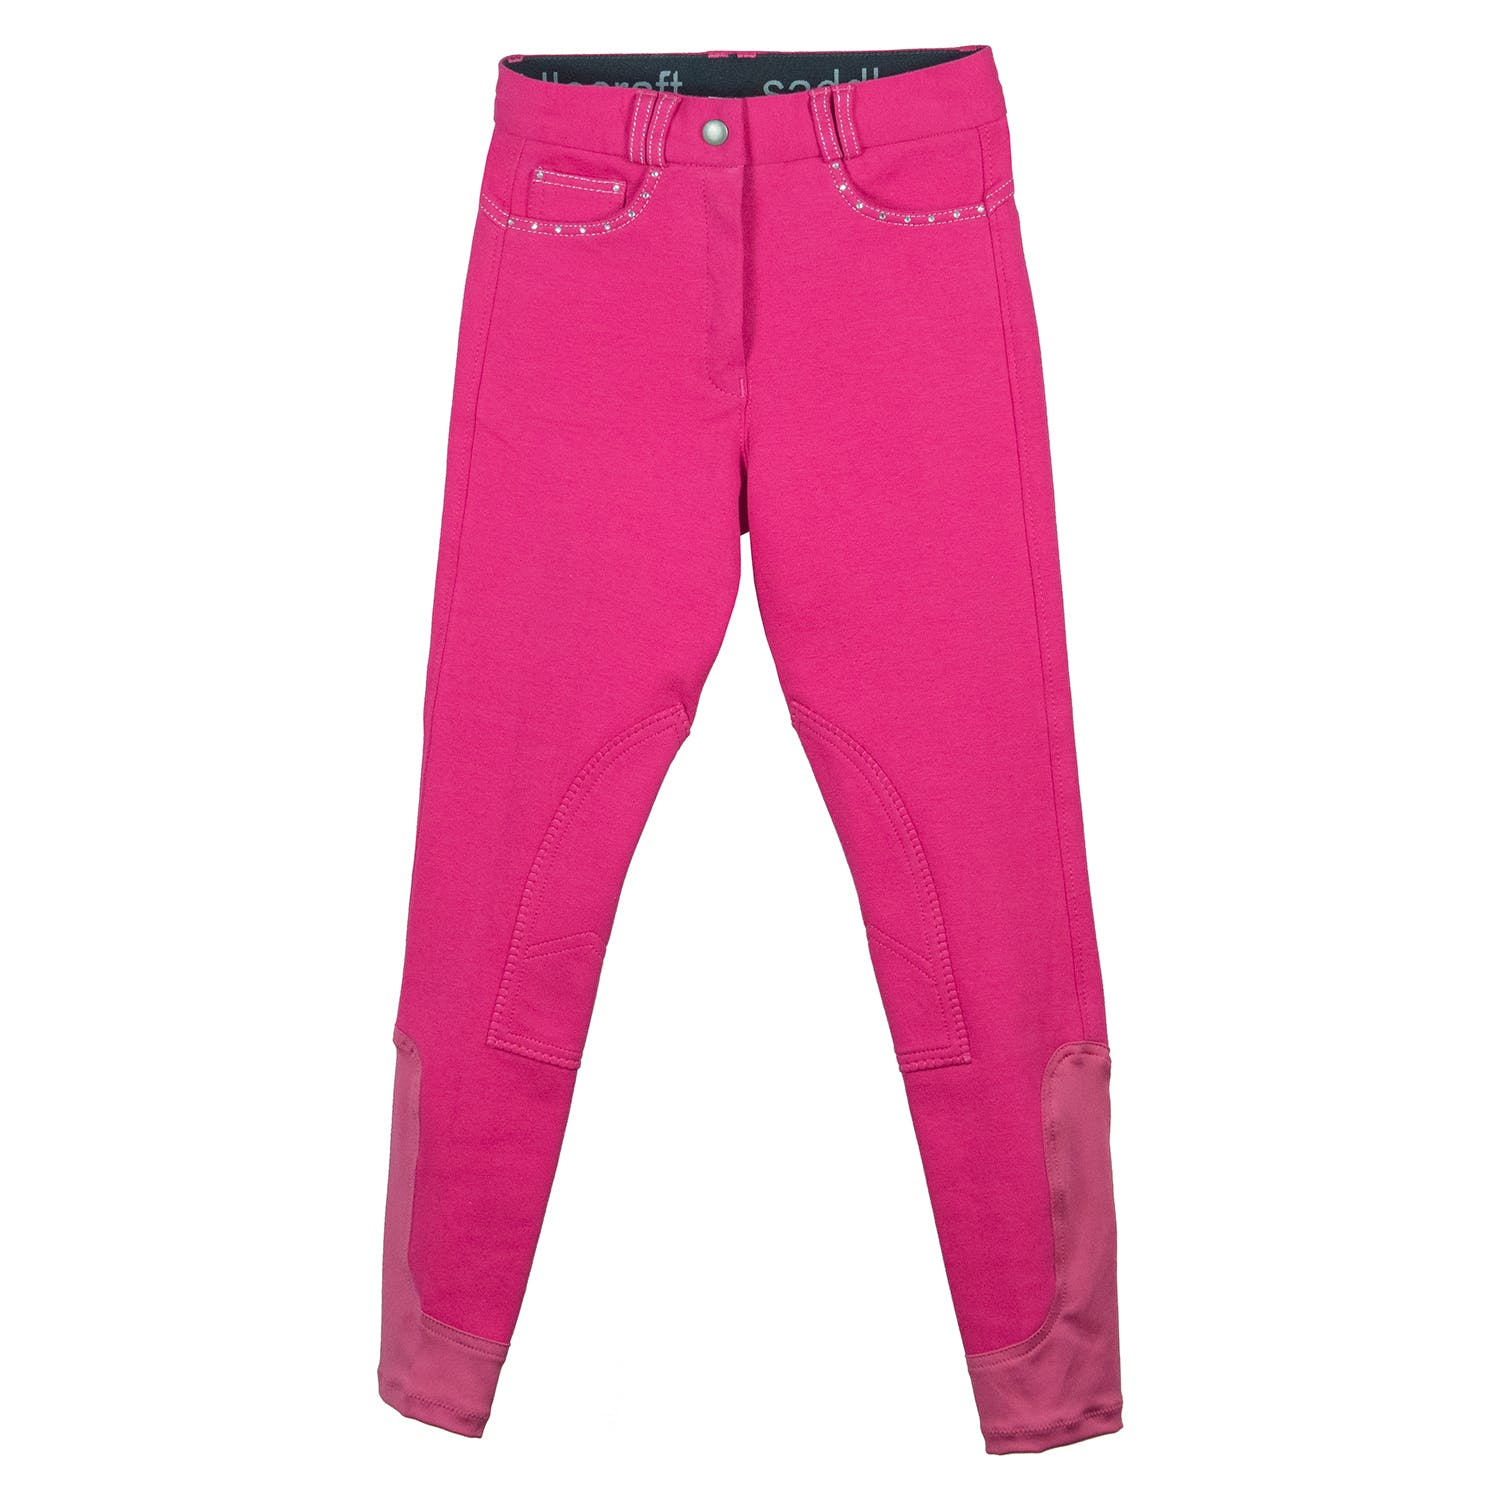 Saddle Craft Contrast Sparkly Kids Riding Breeches From